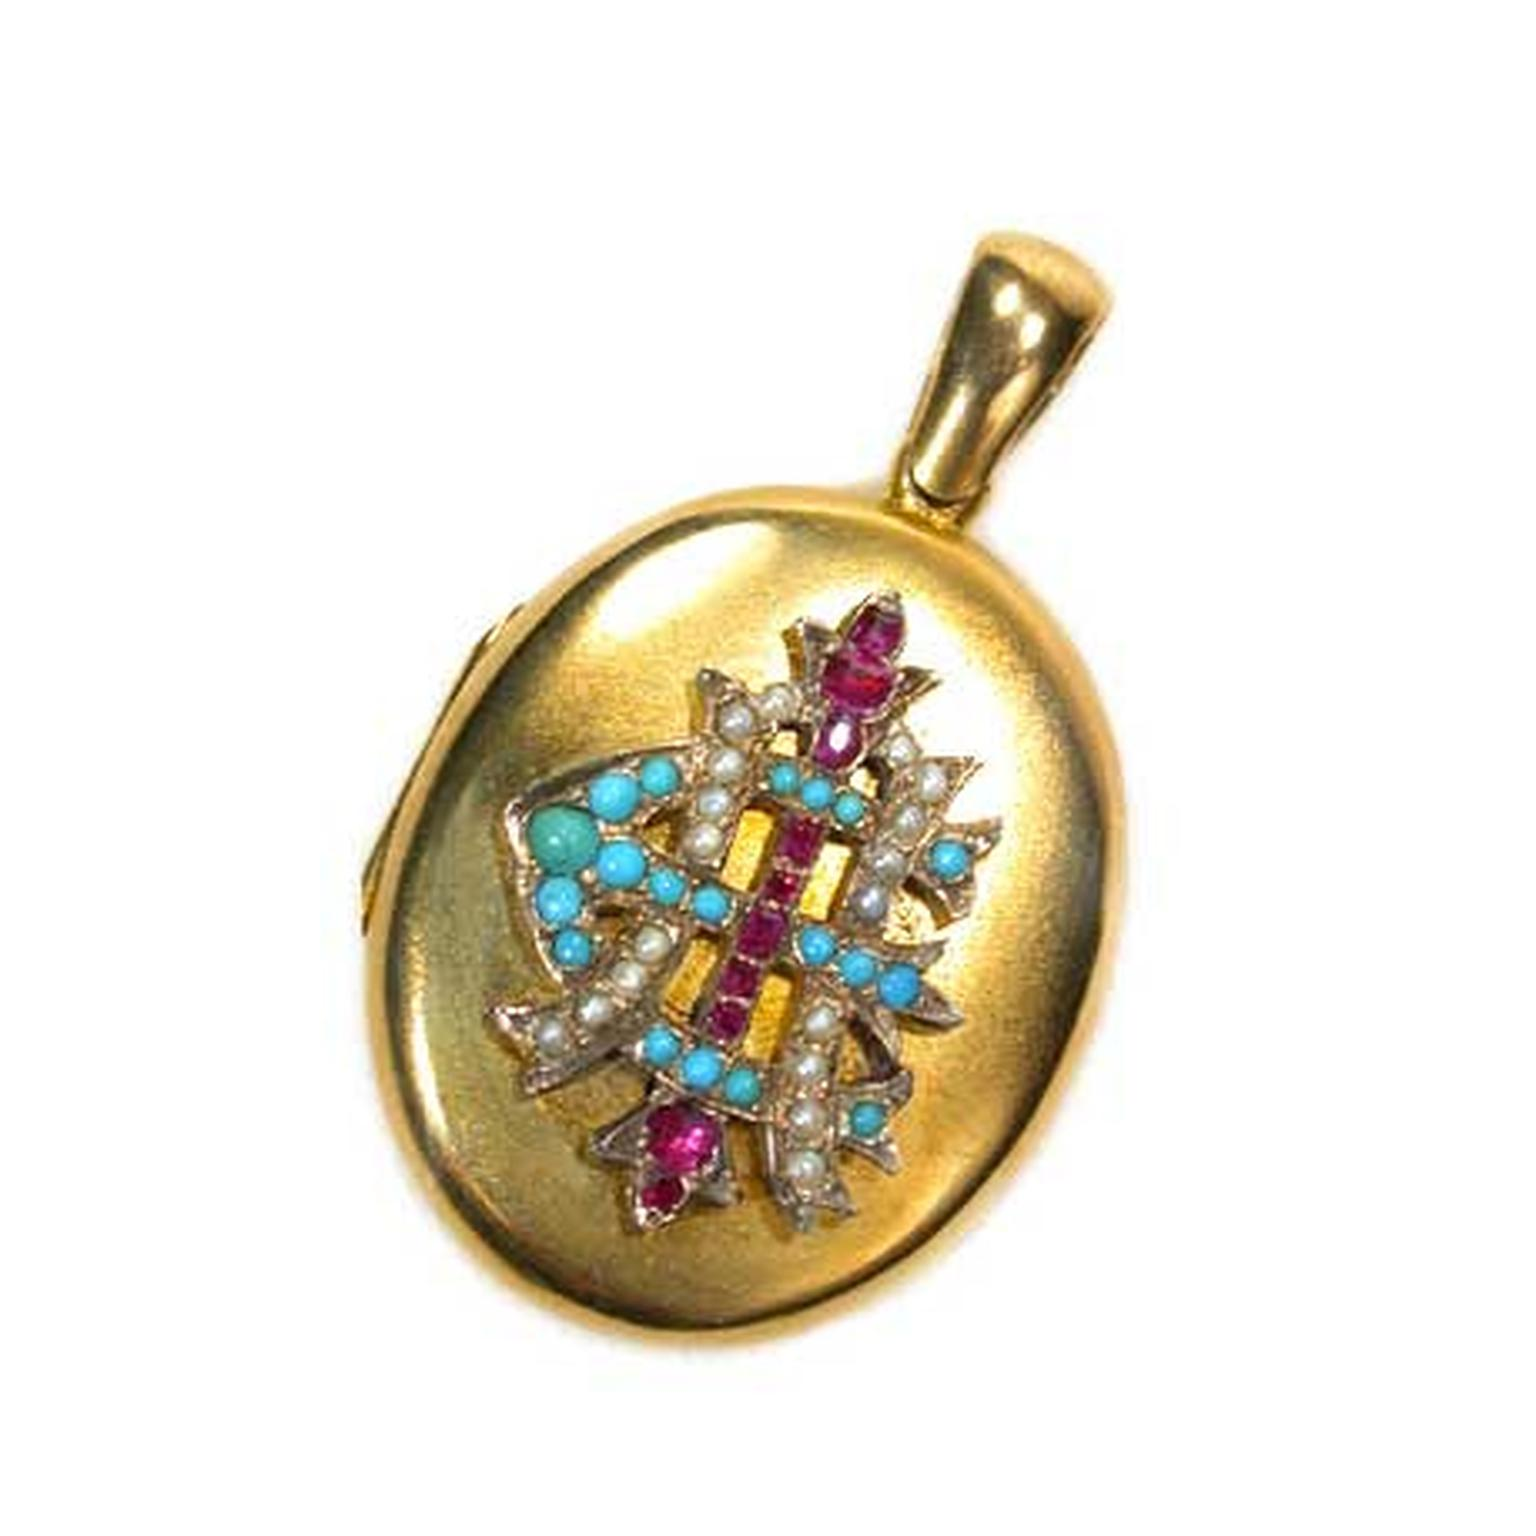 The Three Graces Victorian gold pendant with rubies, sapphires and seed pearls